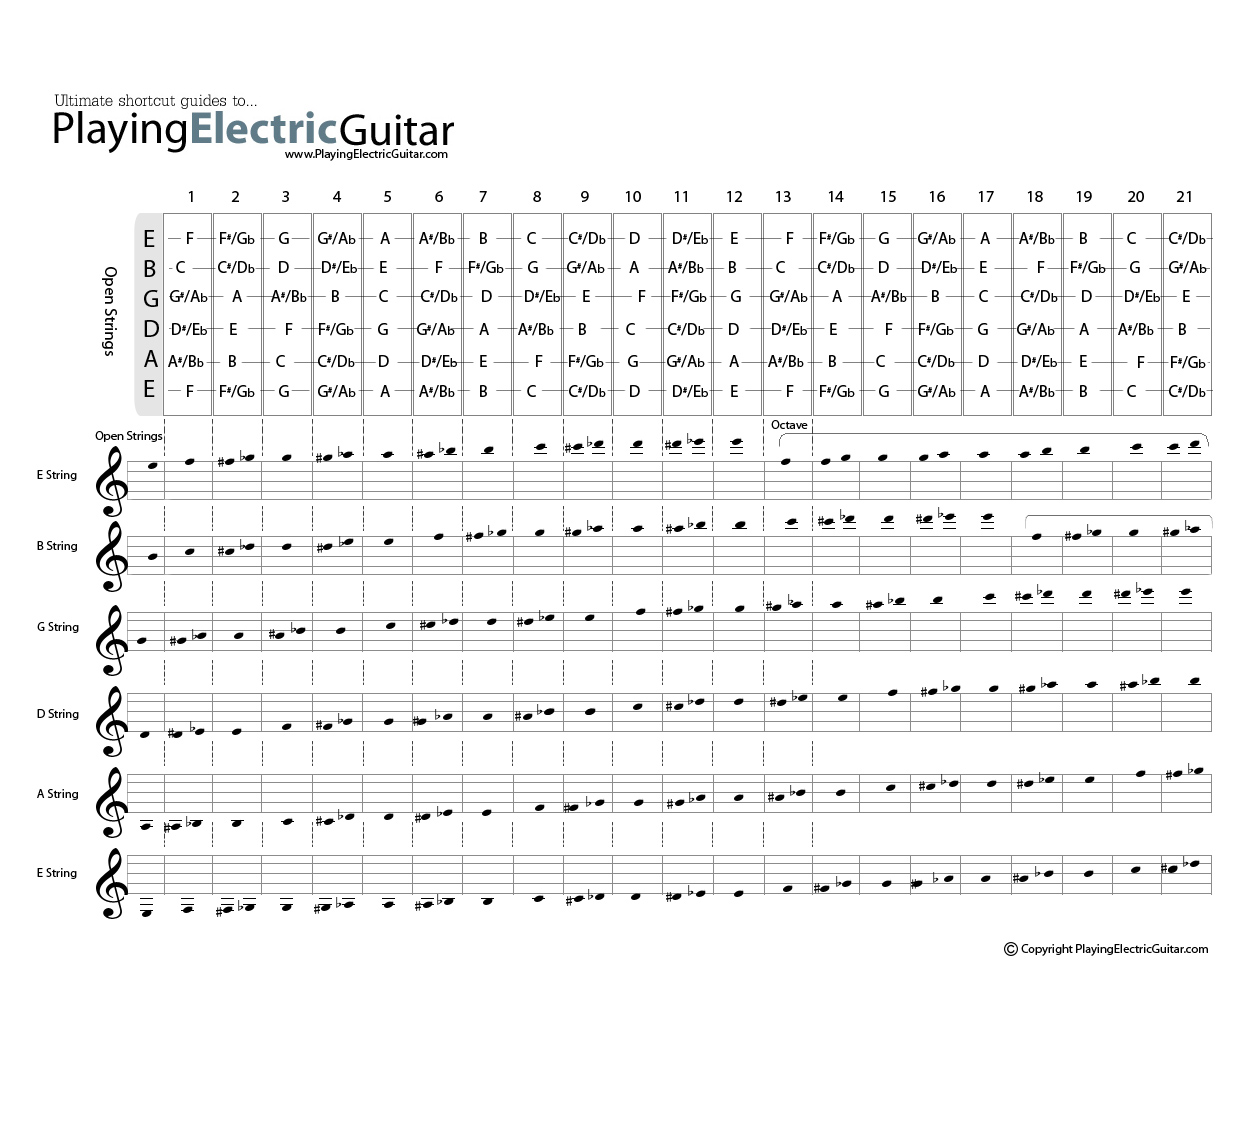 photo relating to Guitar Fretboard Notes Printable identified as Guitar Fretboard Notes - Guitar Fretboard Chart